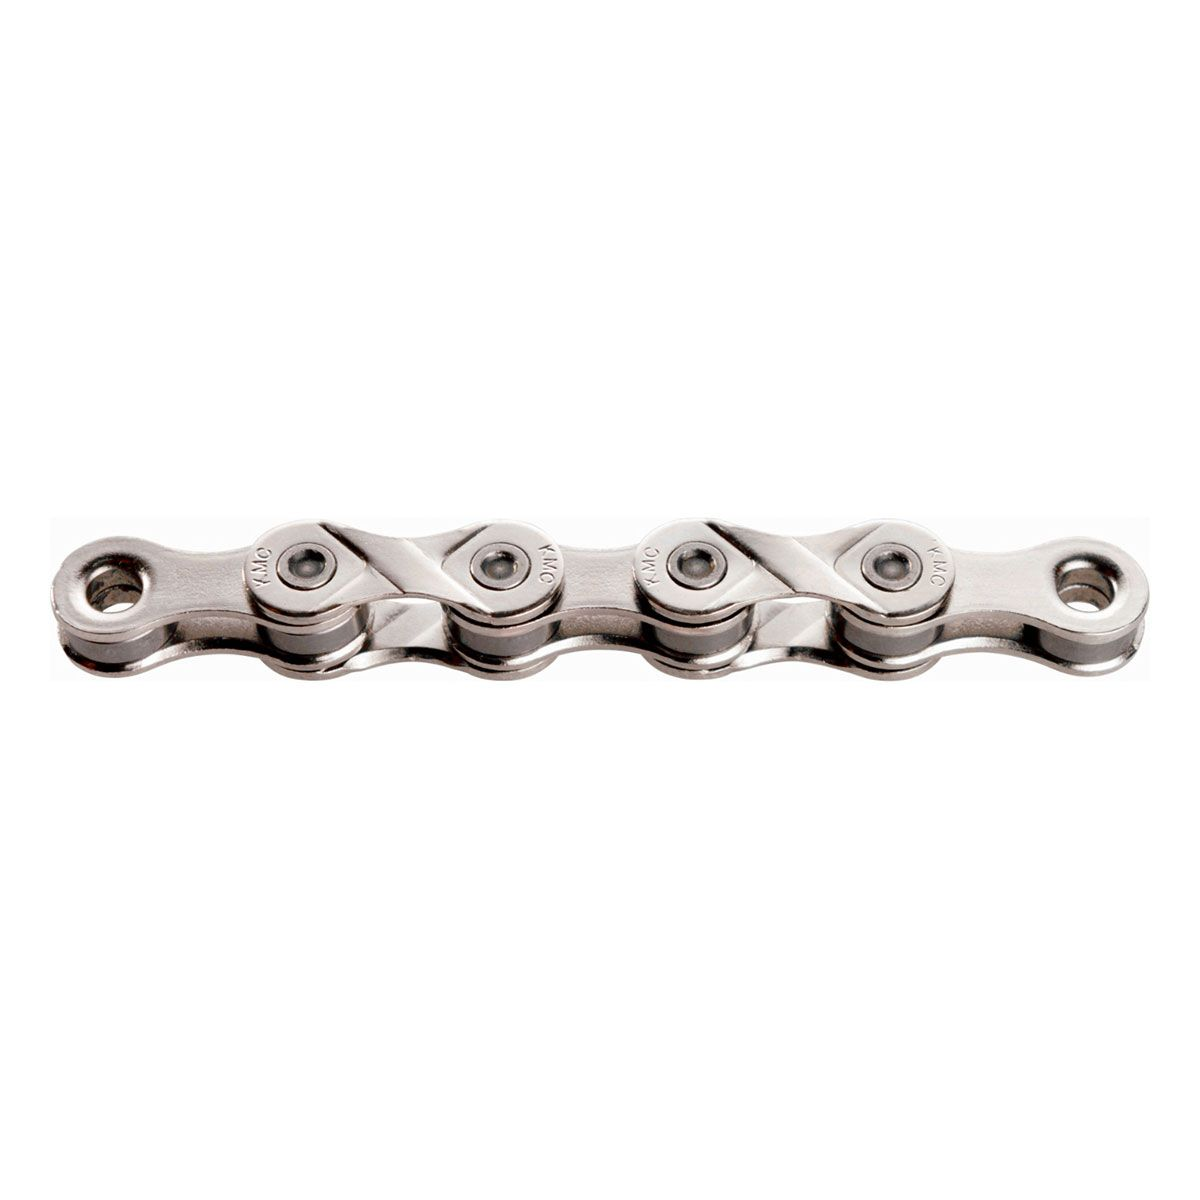 """114 links 8 speed 1//2/"""" X 3//32/"""" *NO GREY pin 7.3mm KMC X8 Silver chain"""